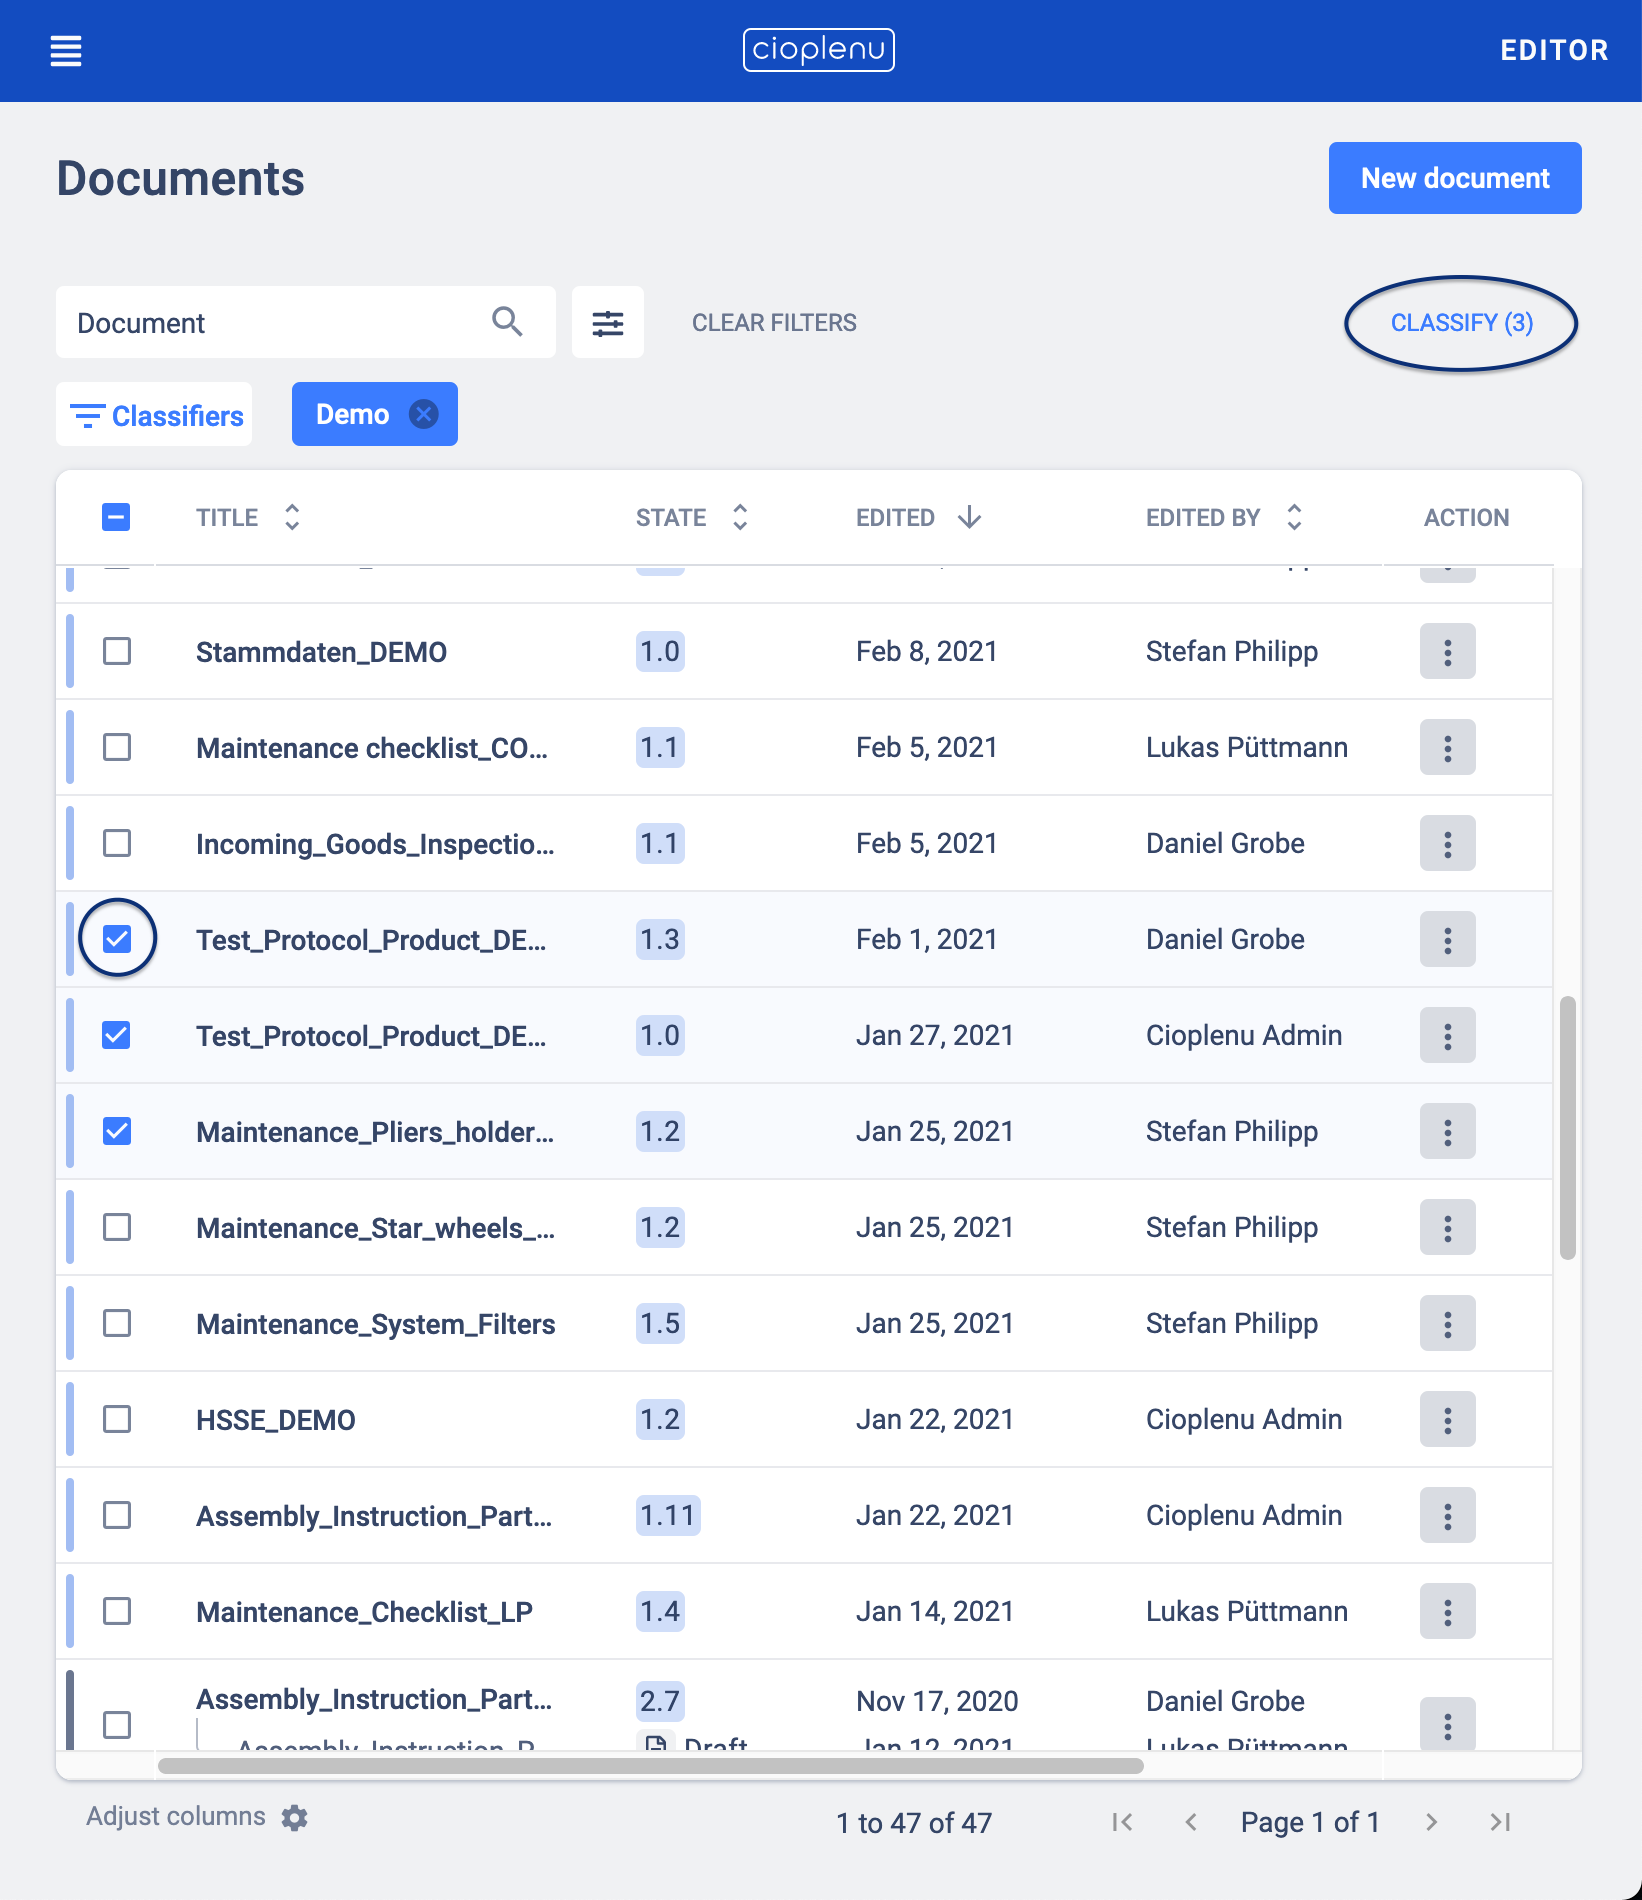 bulk classification of documents in overview